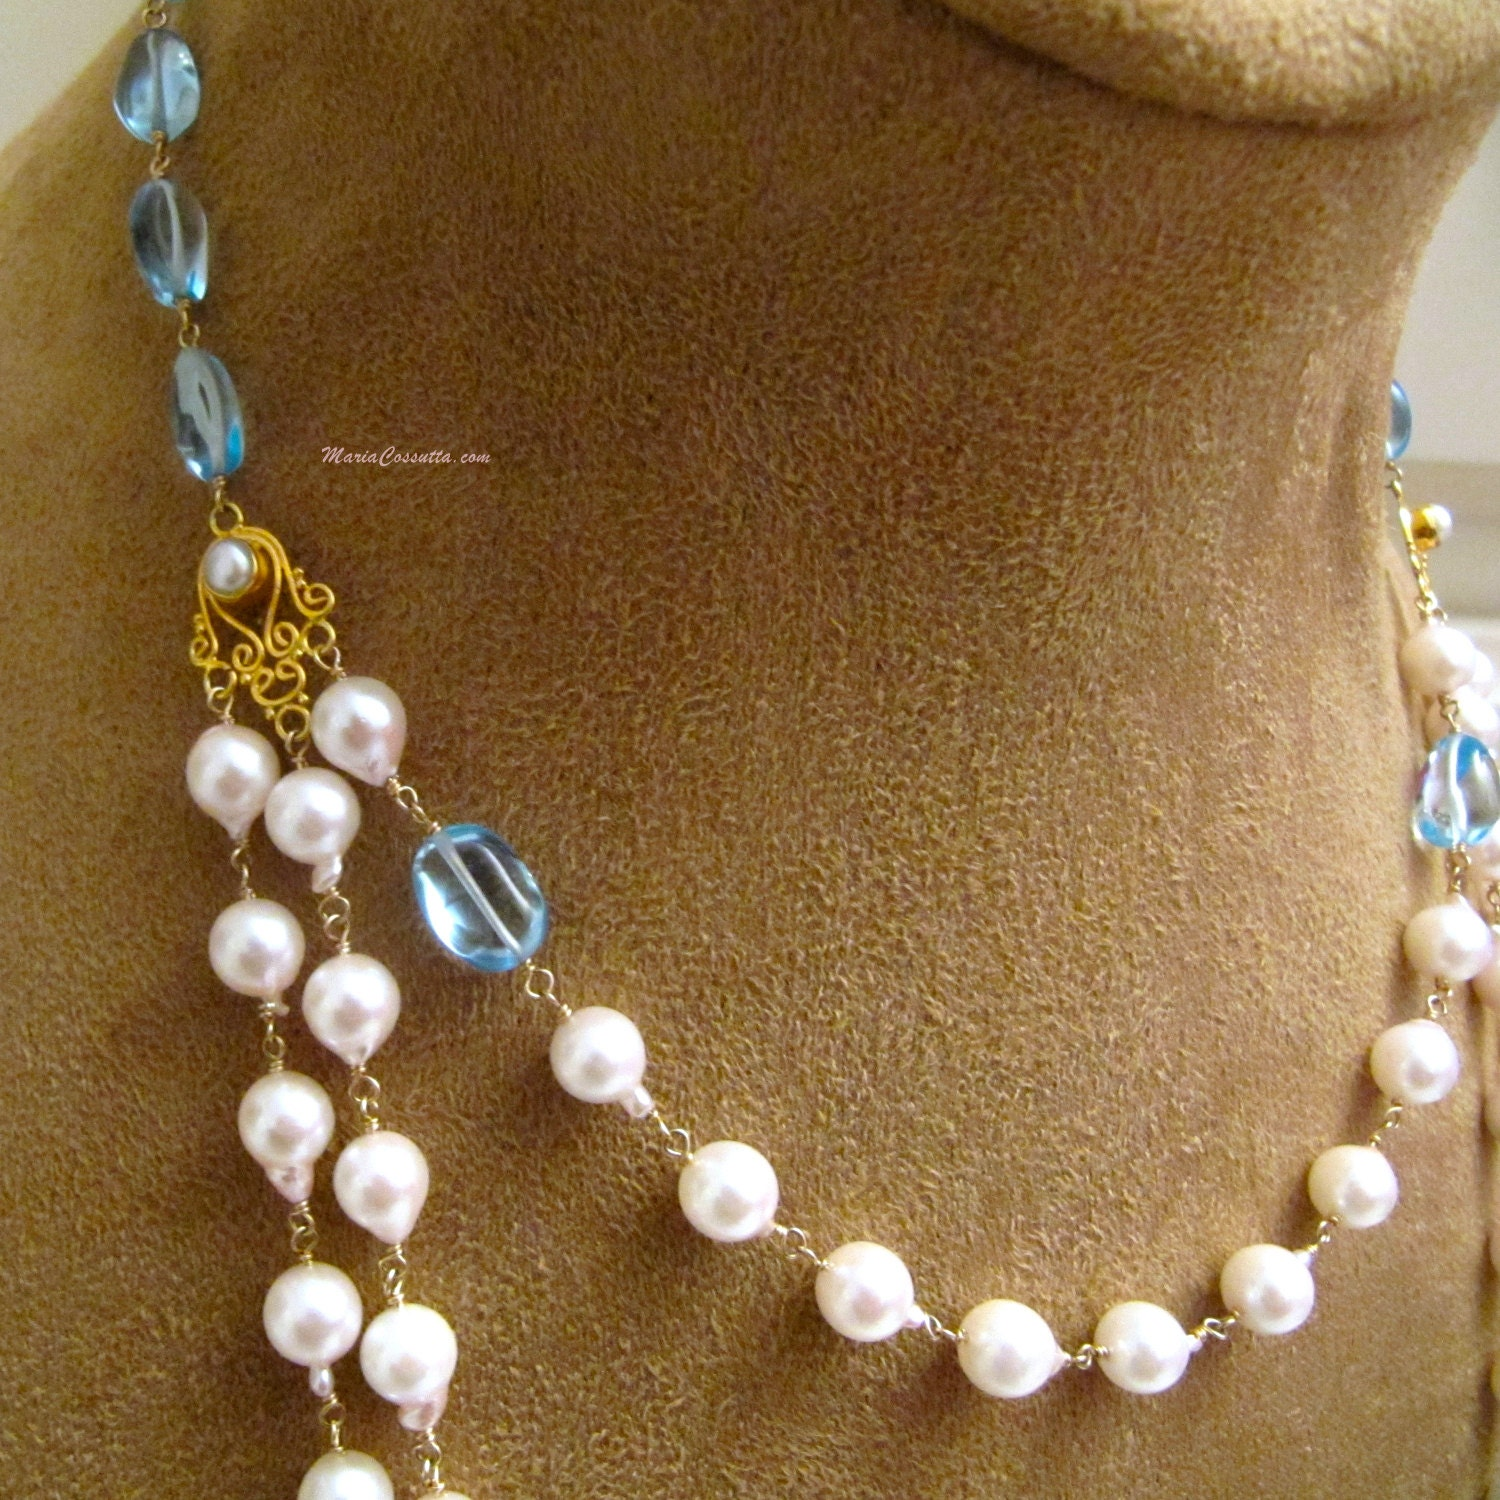 pearlgirls pearls img girls page the jewelry water posted pearl sea